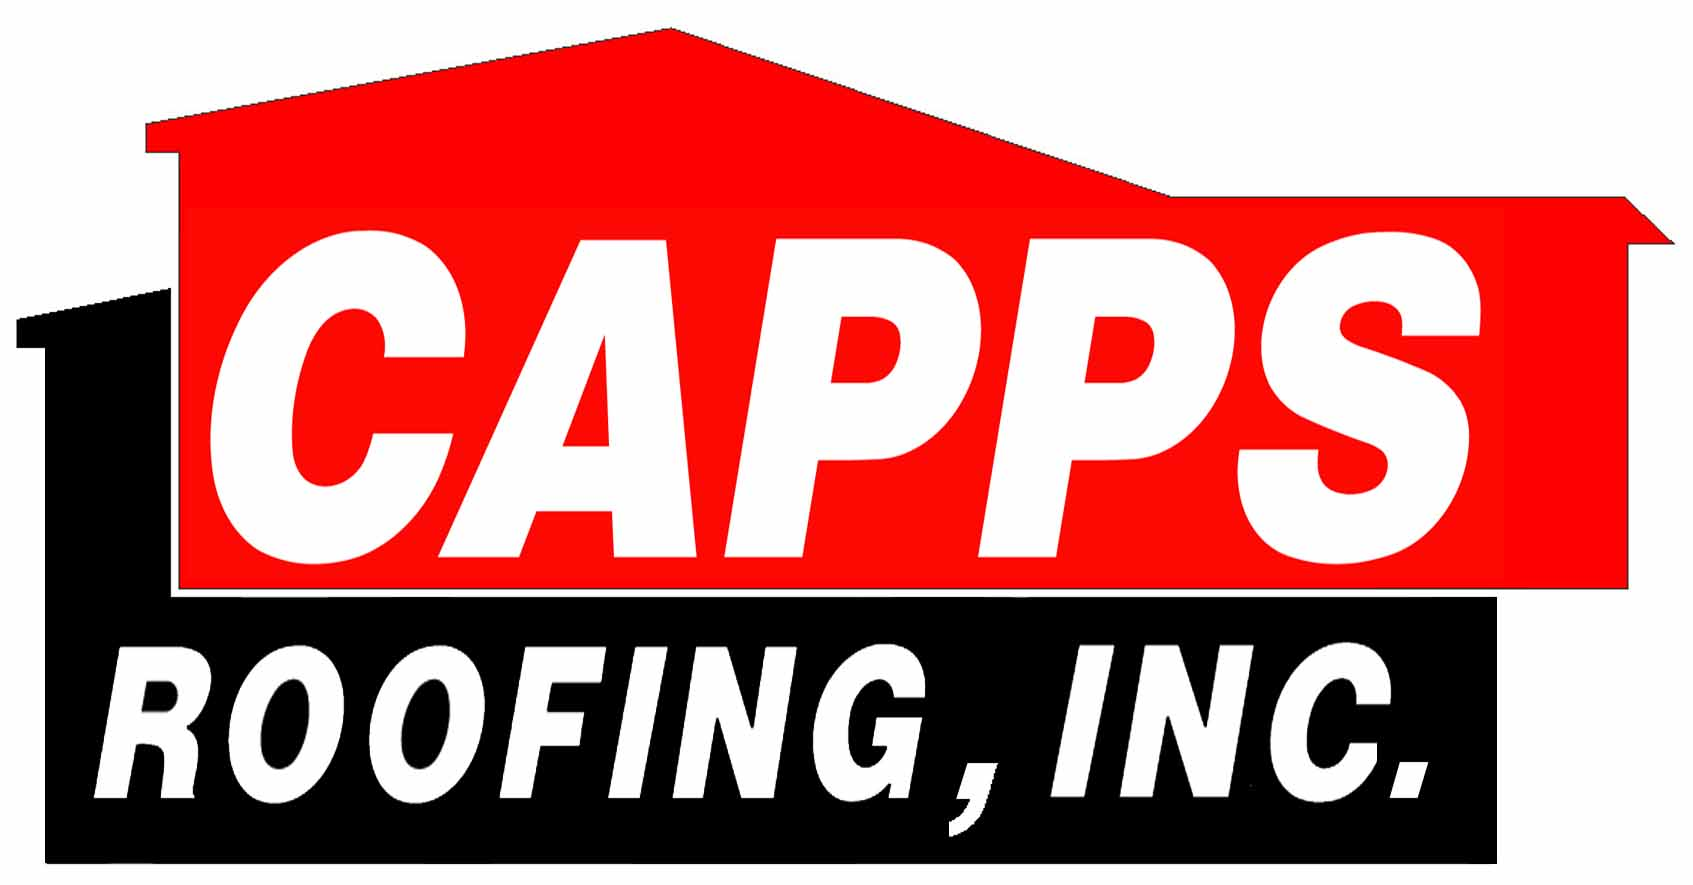 Capps Roofing Inc logo